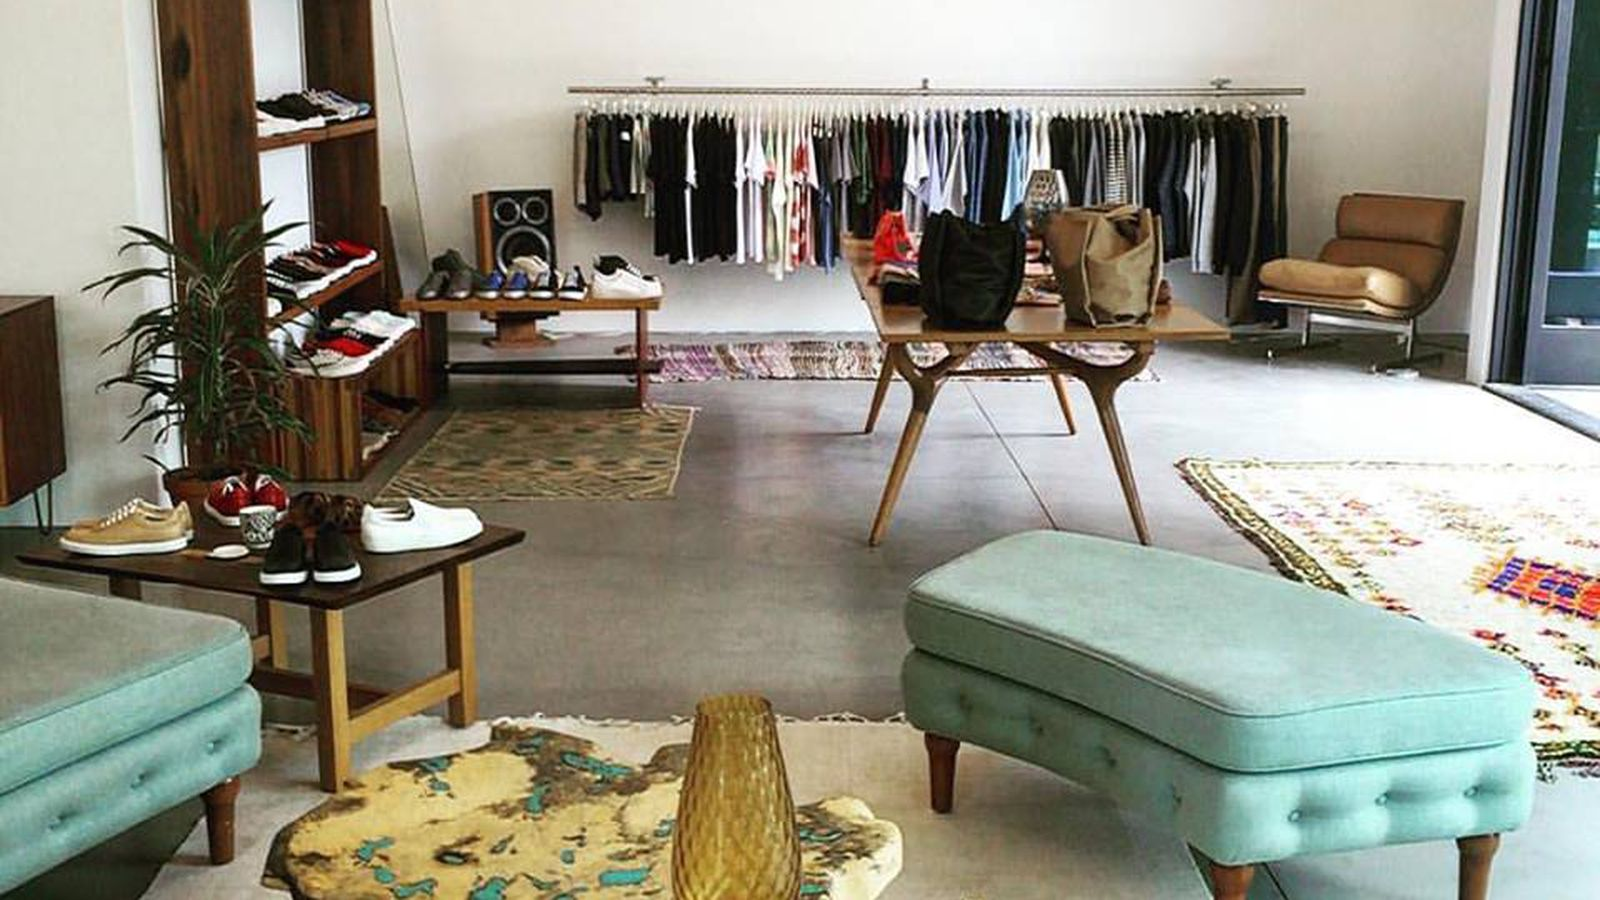 Furniture Stores On Venice Blvd Culver City H D Buttercup Guide To Shopping In Culver City Los